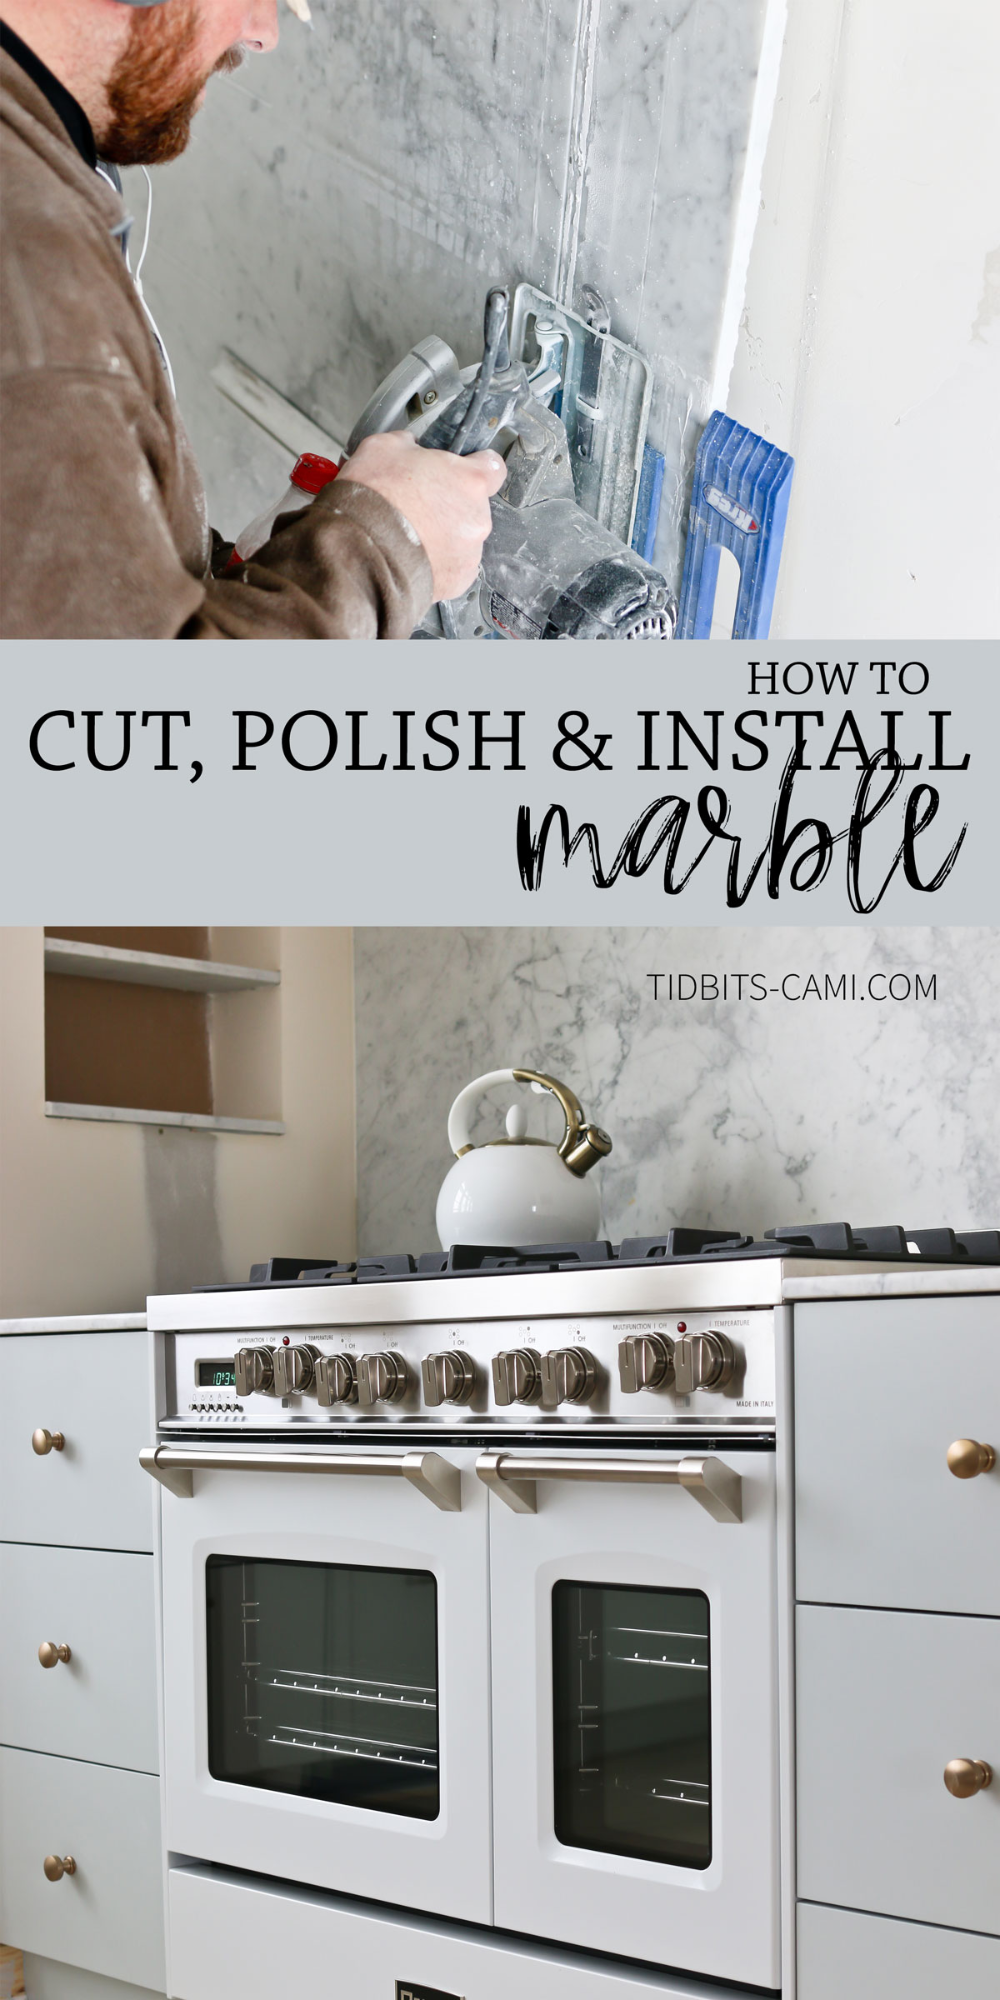 How to cut, hone and install marble yourself! Get the look for less! #marble #marblecountertops #camitidbits #cutmarble #kitchendesign #diycountertops